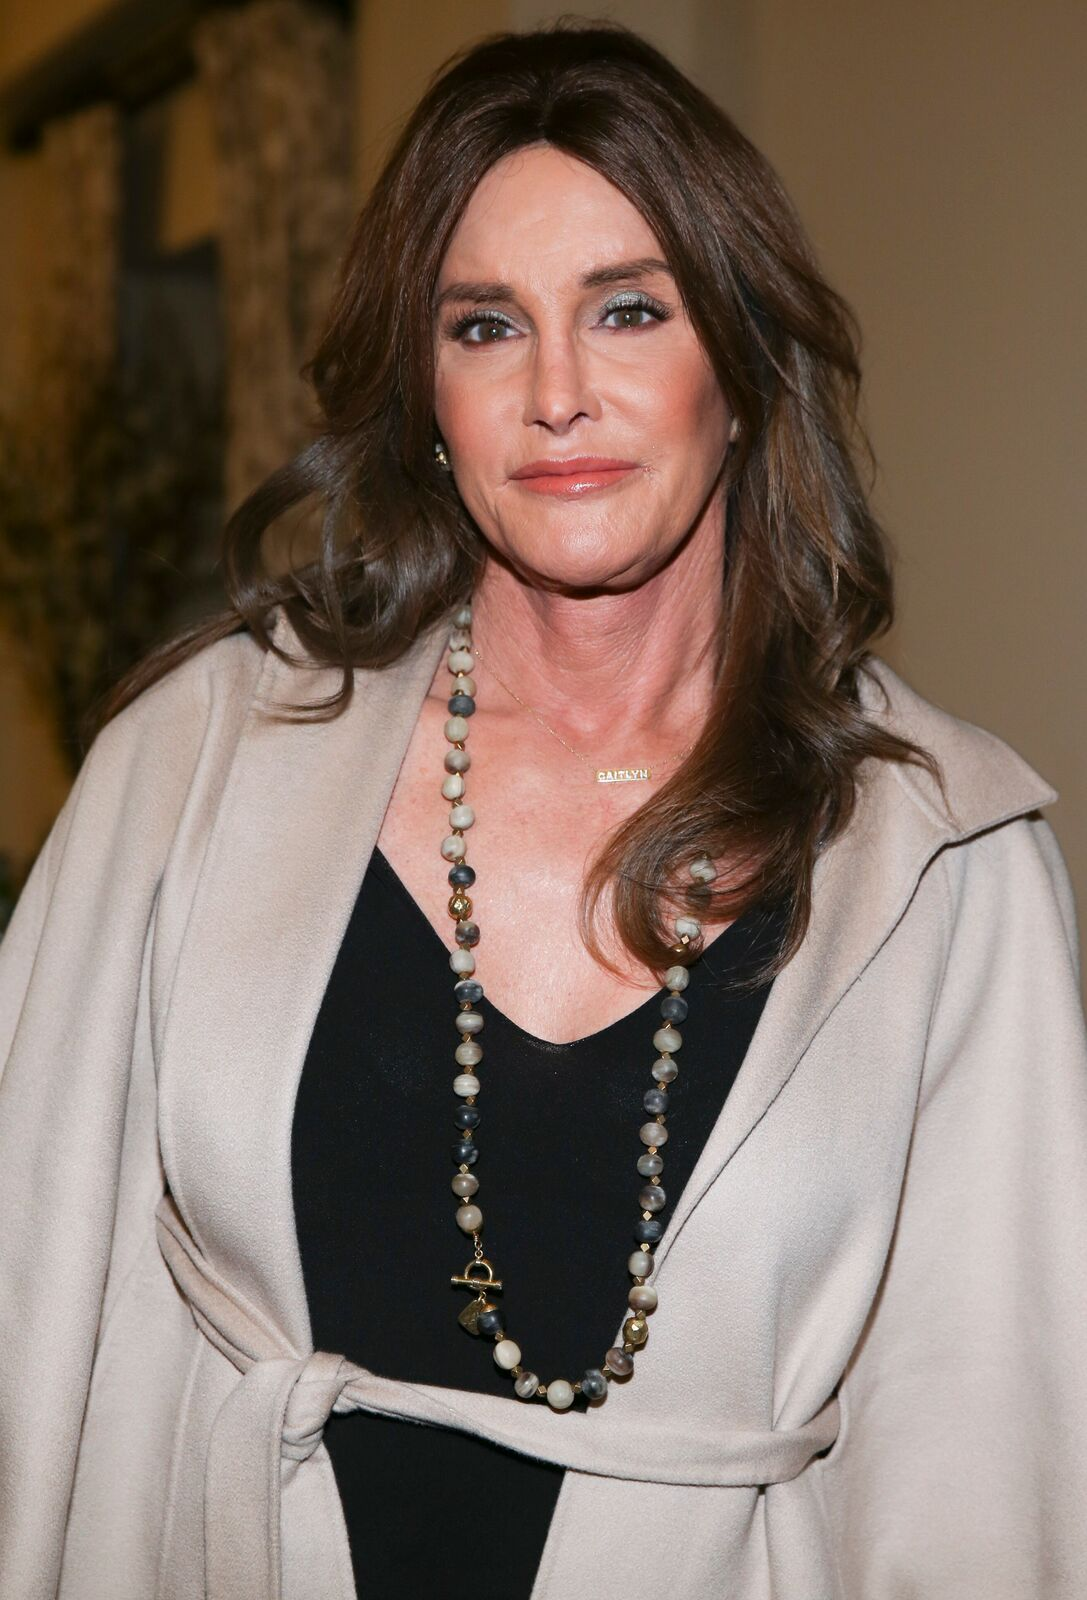 Television personality Caitlyn Jenner attends at the 2016 MAKERS Conference, Day 1 at the Terrenea Resort on February 1, 2016 in Rancho Palos Verdes, California | Photo: Getty Images